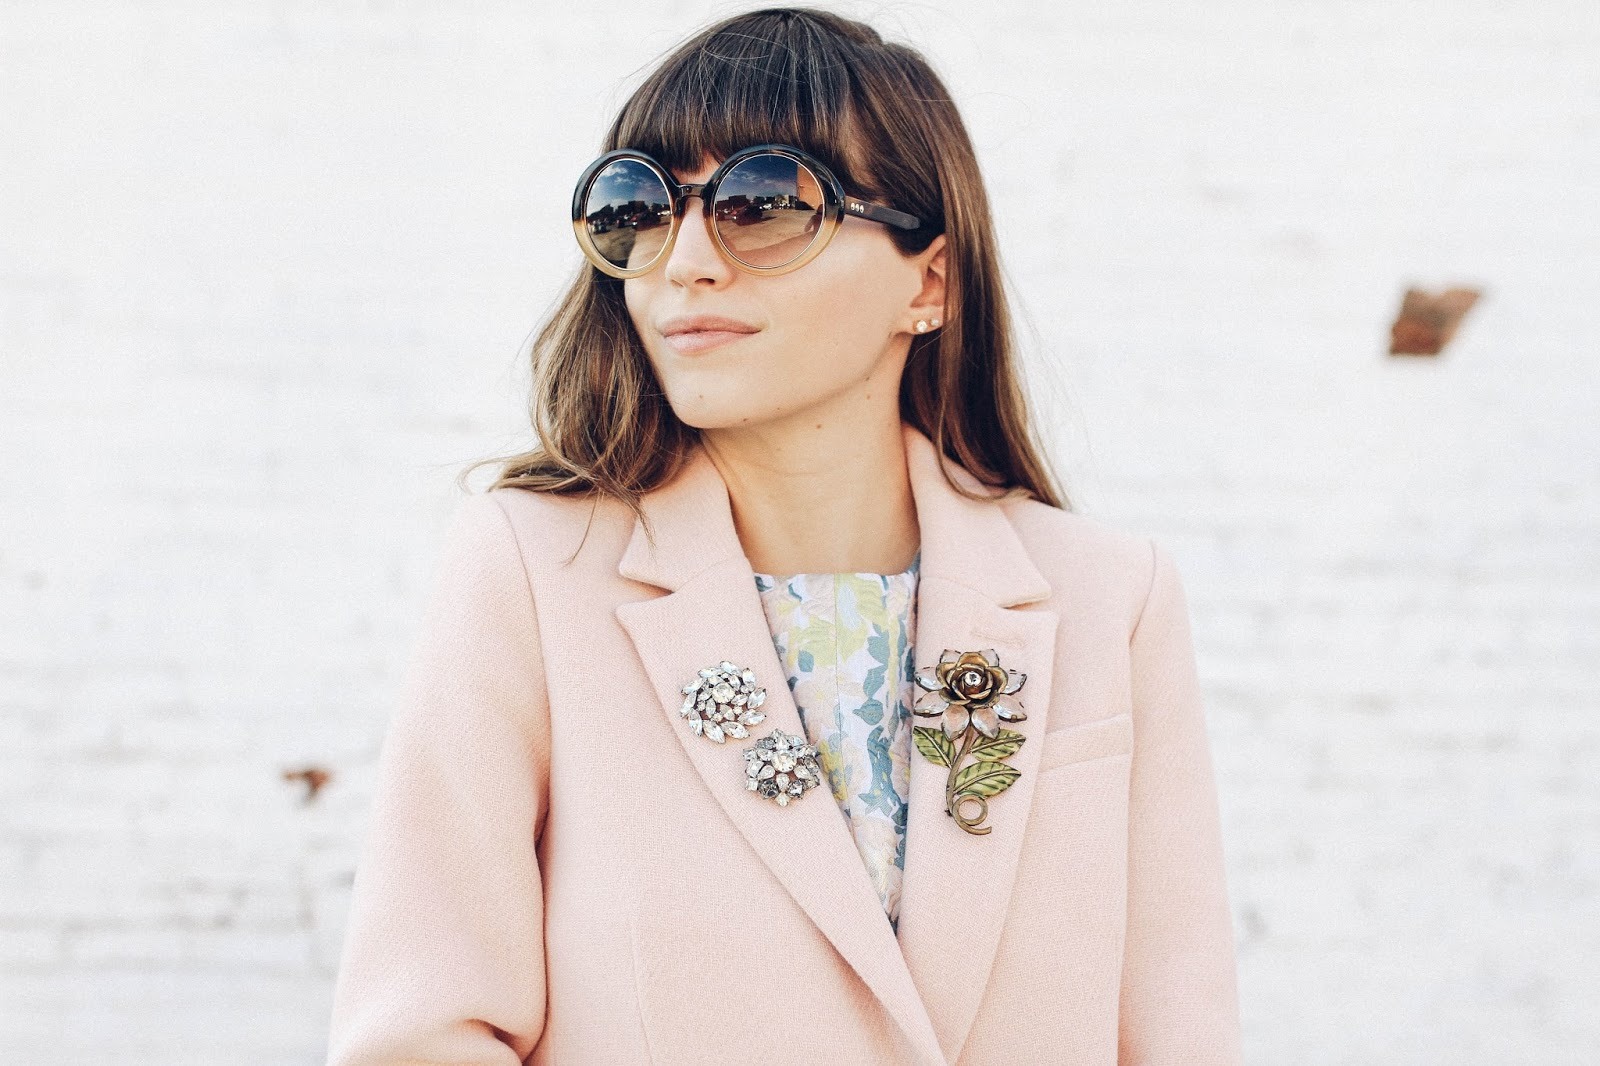 Put a Pin On It: A Brooch That Is (vintage brooches on a blush pink coat) | Click through for the details. | glitterinc.com | @glitterinc